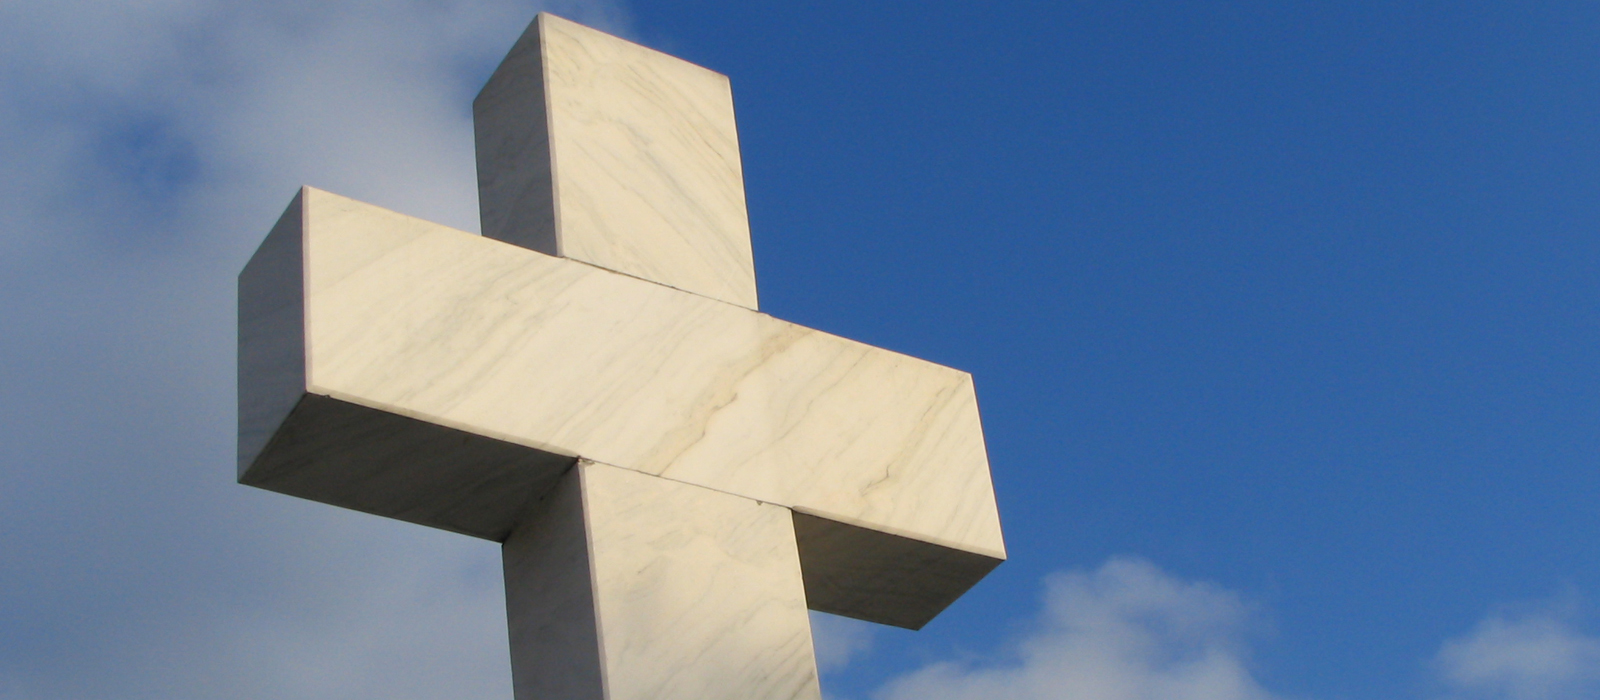 A large cross monument outside.